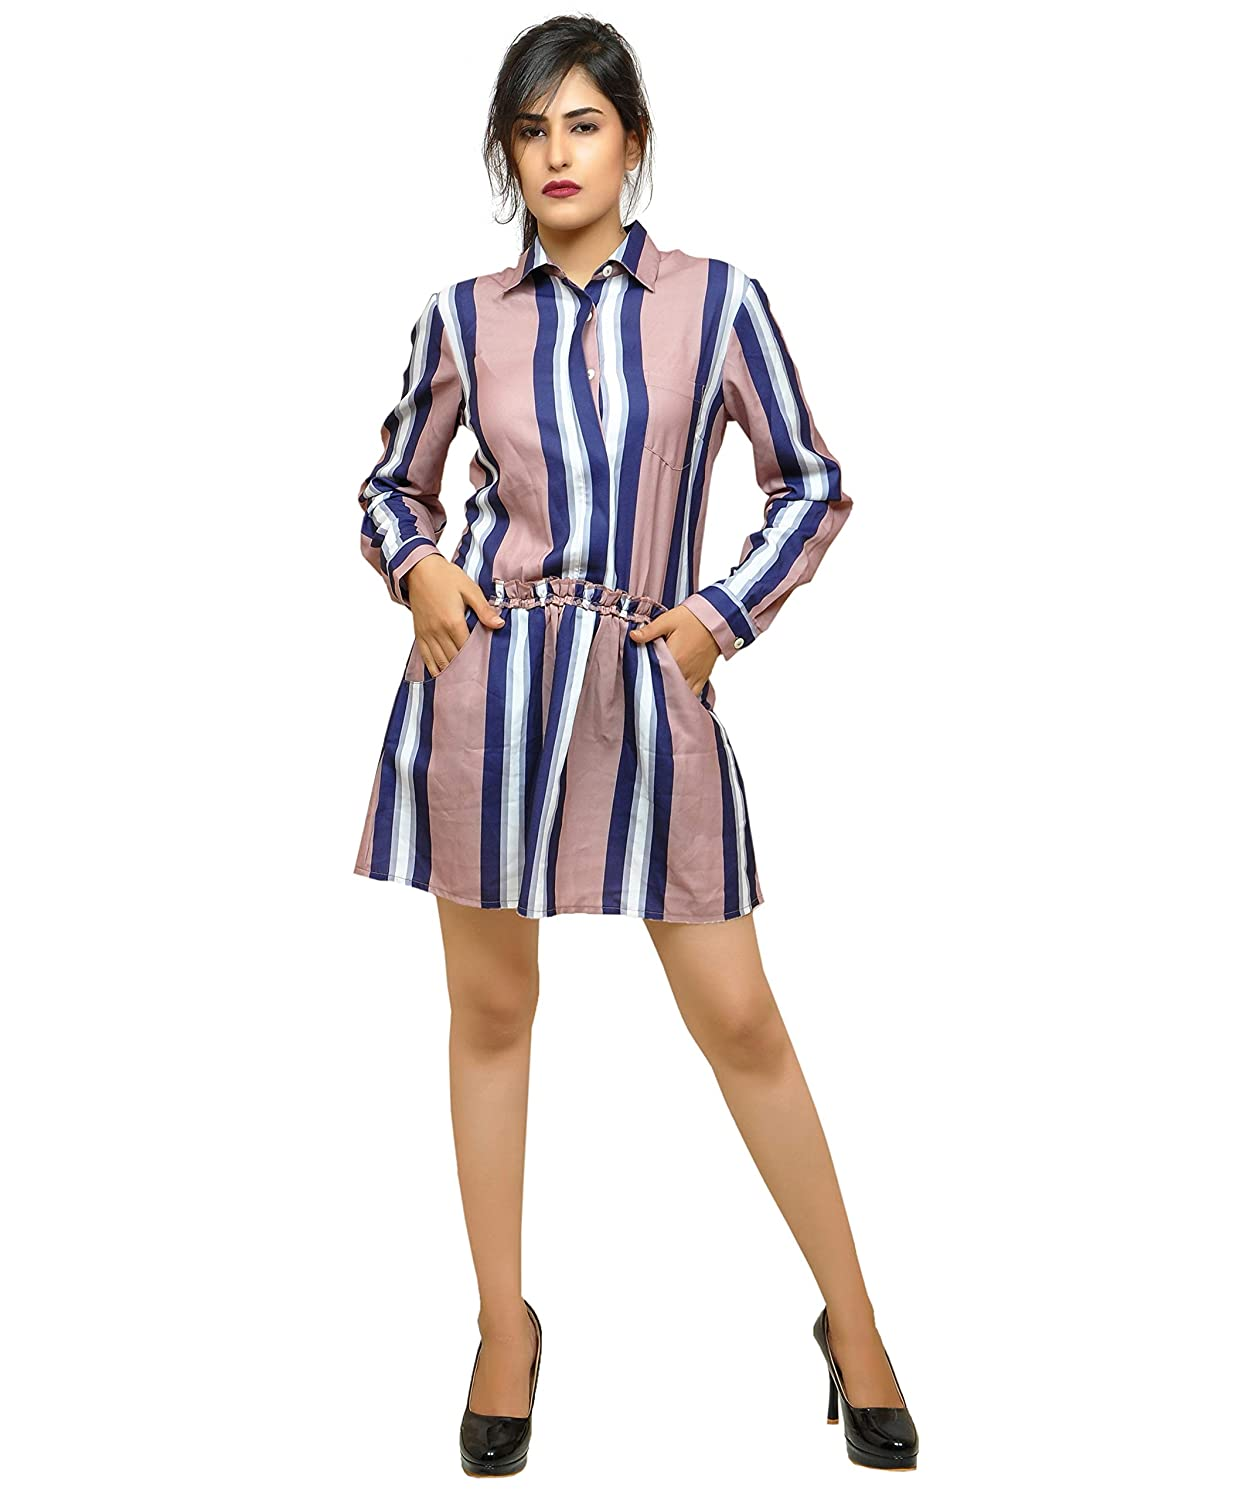 33213a8cbea08 RESHA Women's Purple Pink Striped Western Formal Shift Dress: Amazon.in:  Clothing & Accessories